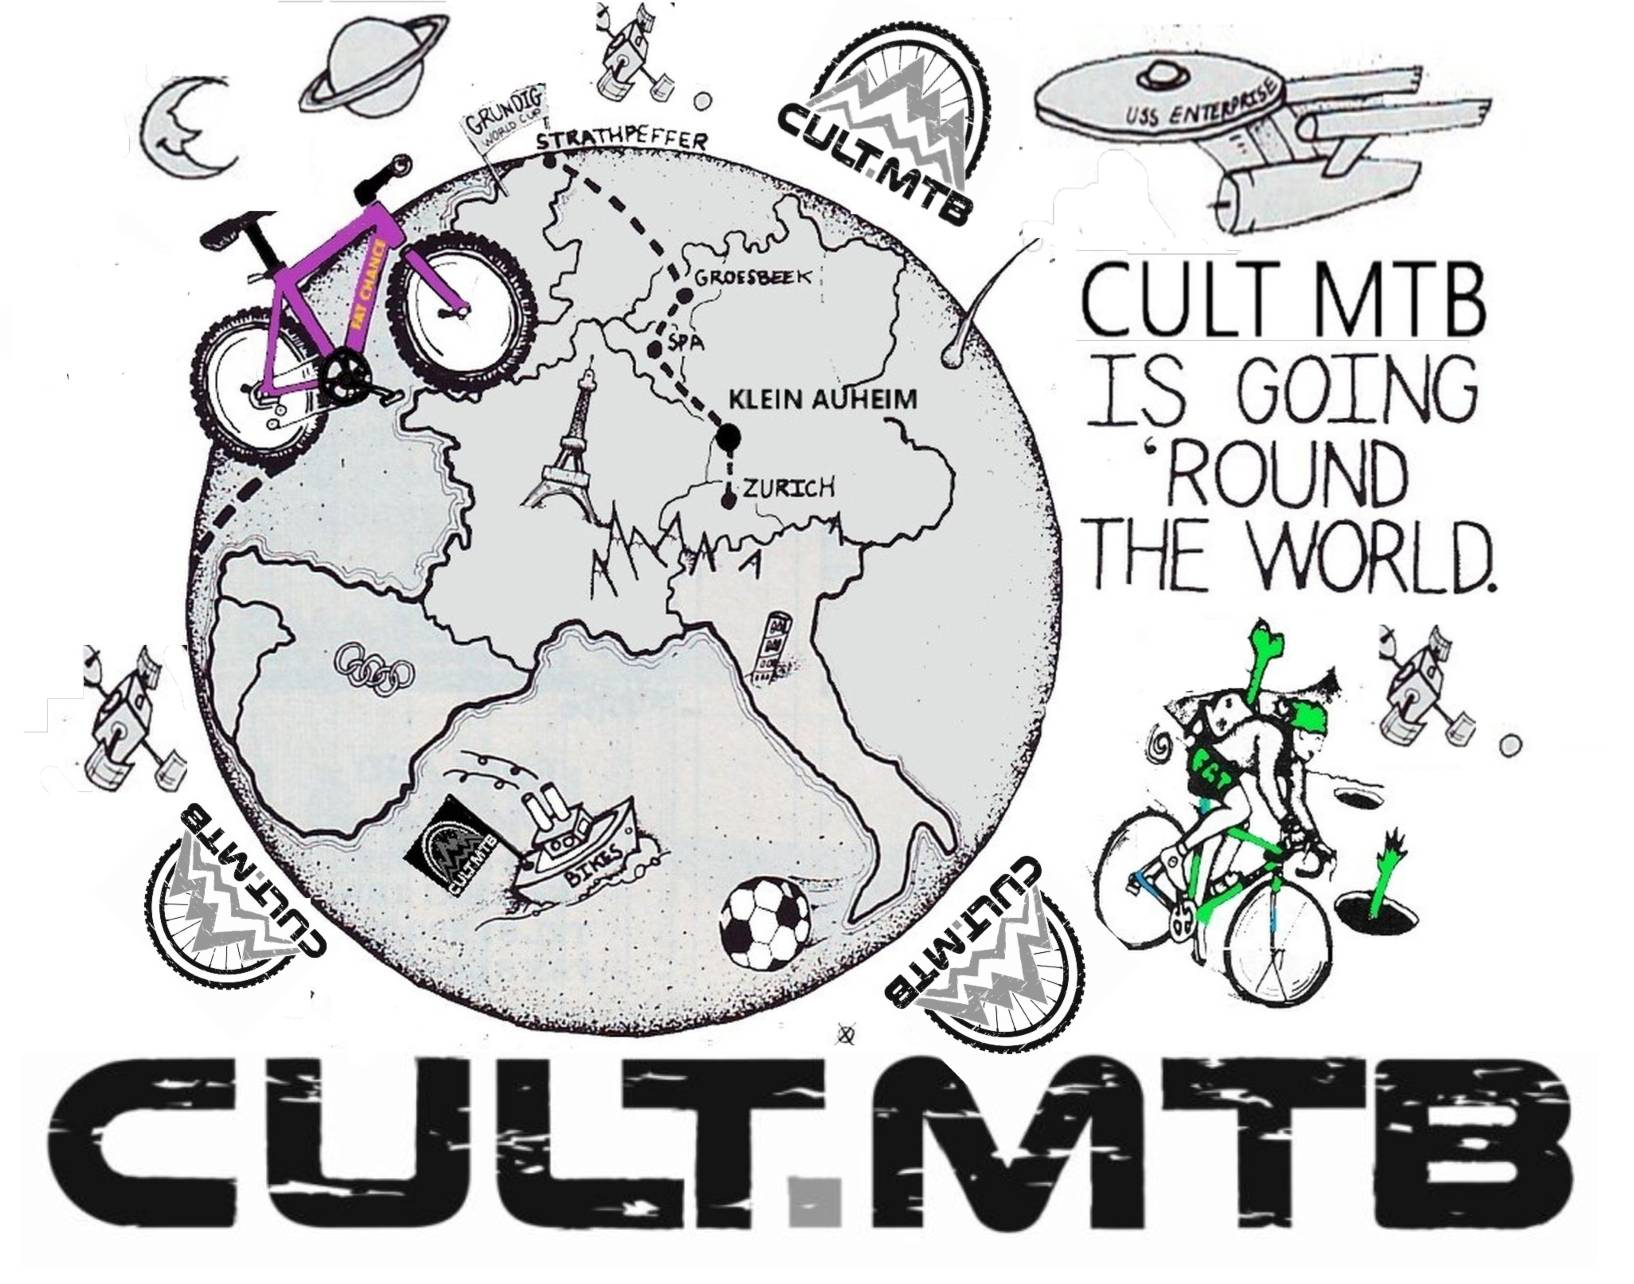 cultMTB_around_the_world Logo 1A